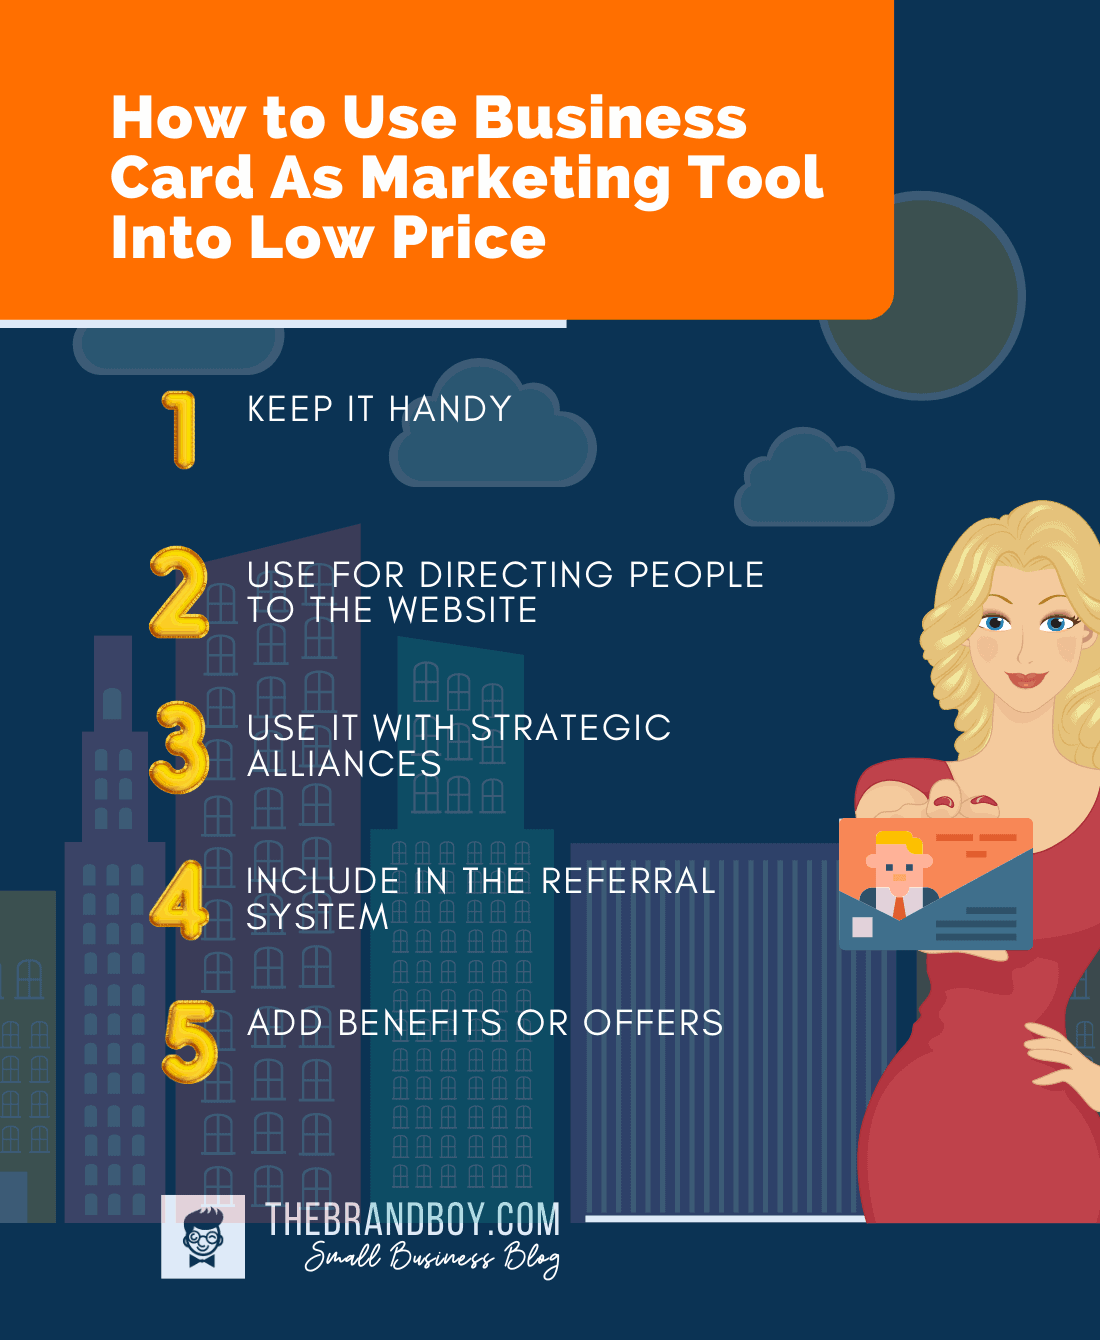 business card as marketing tool